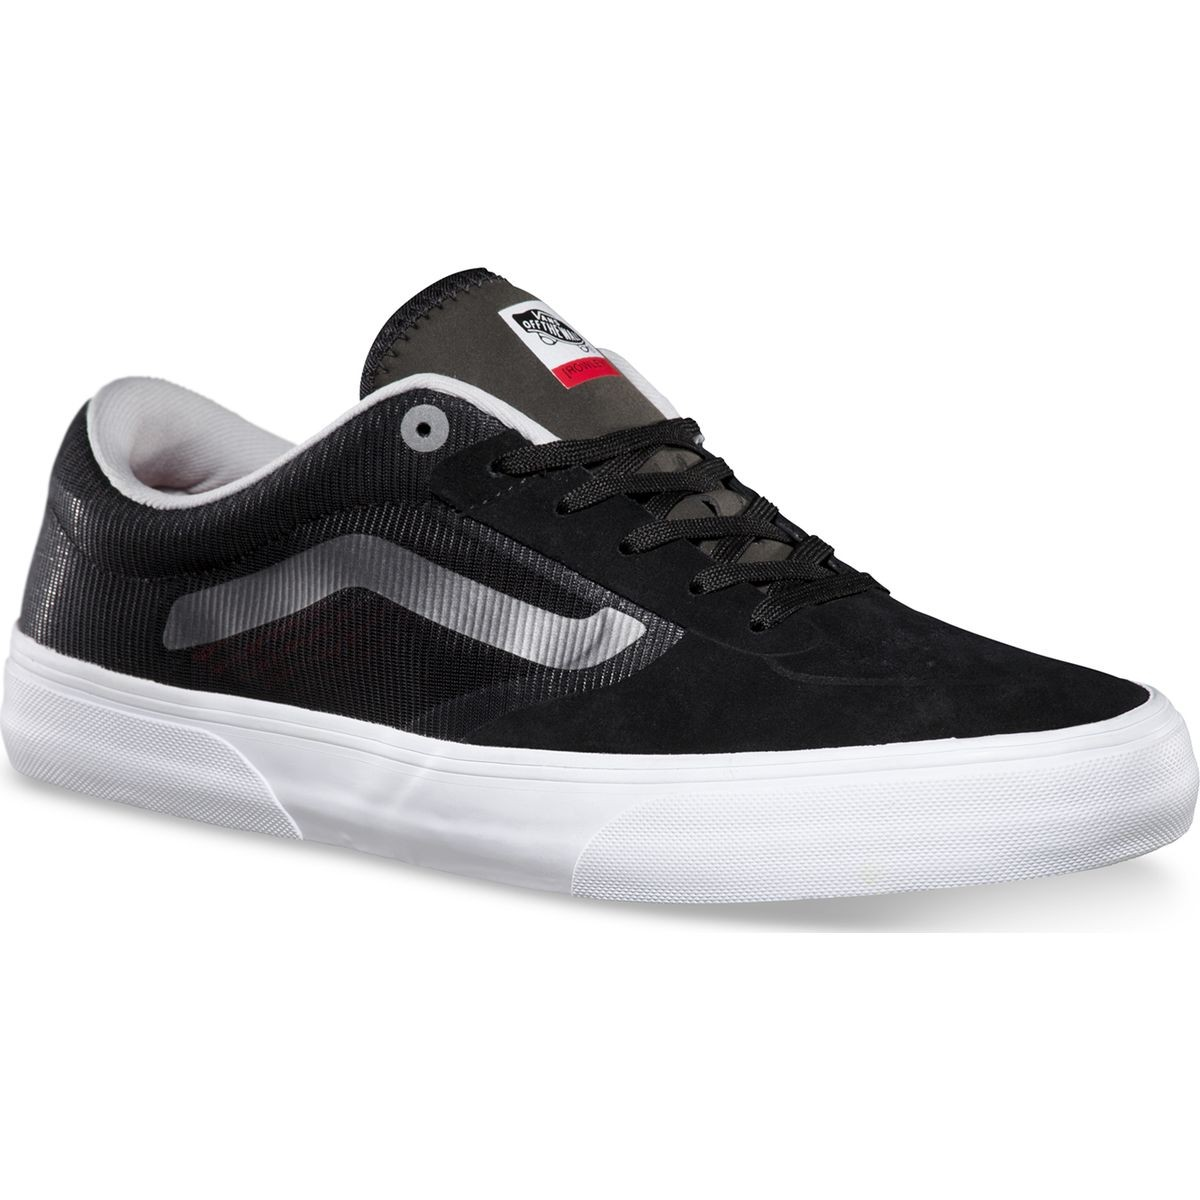 Vans Rowley Pro Lite Shoes - Black - 13.0